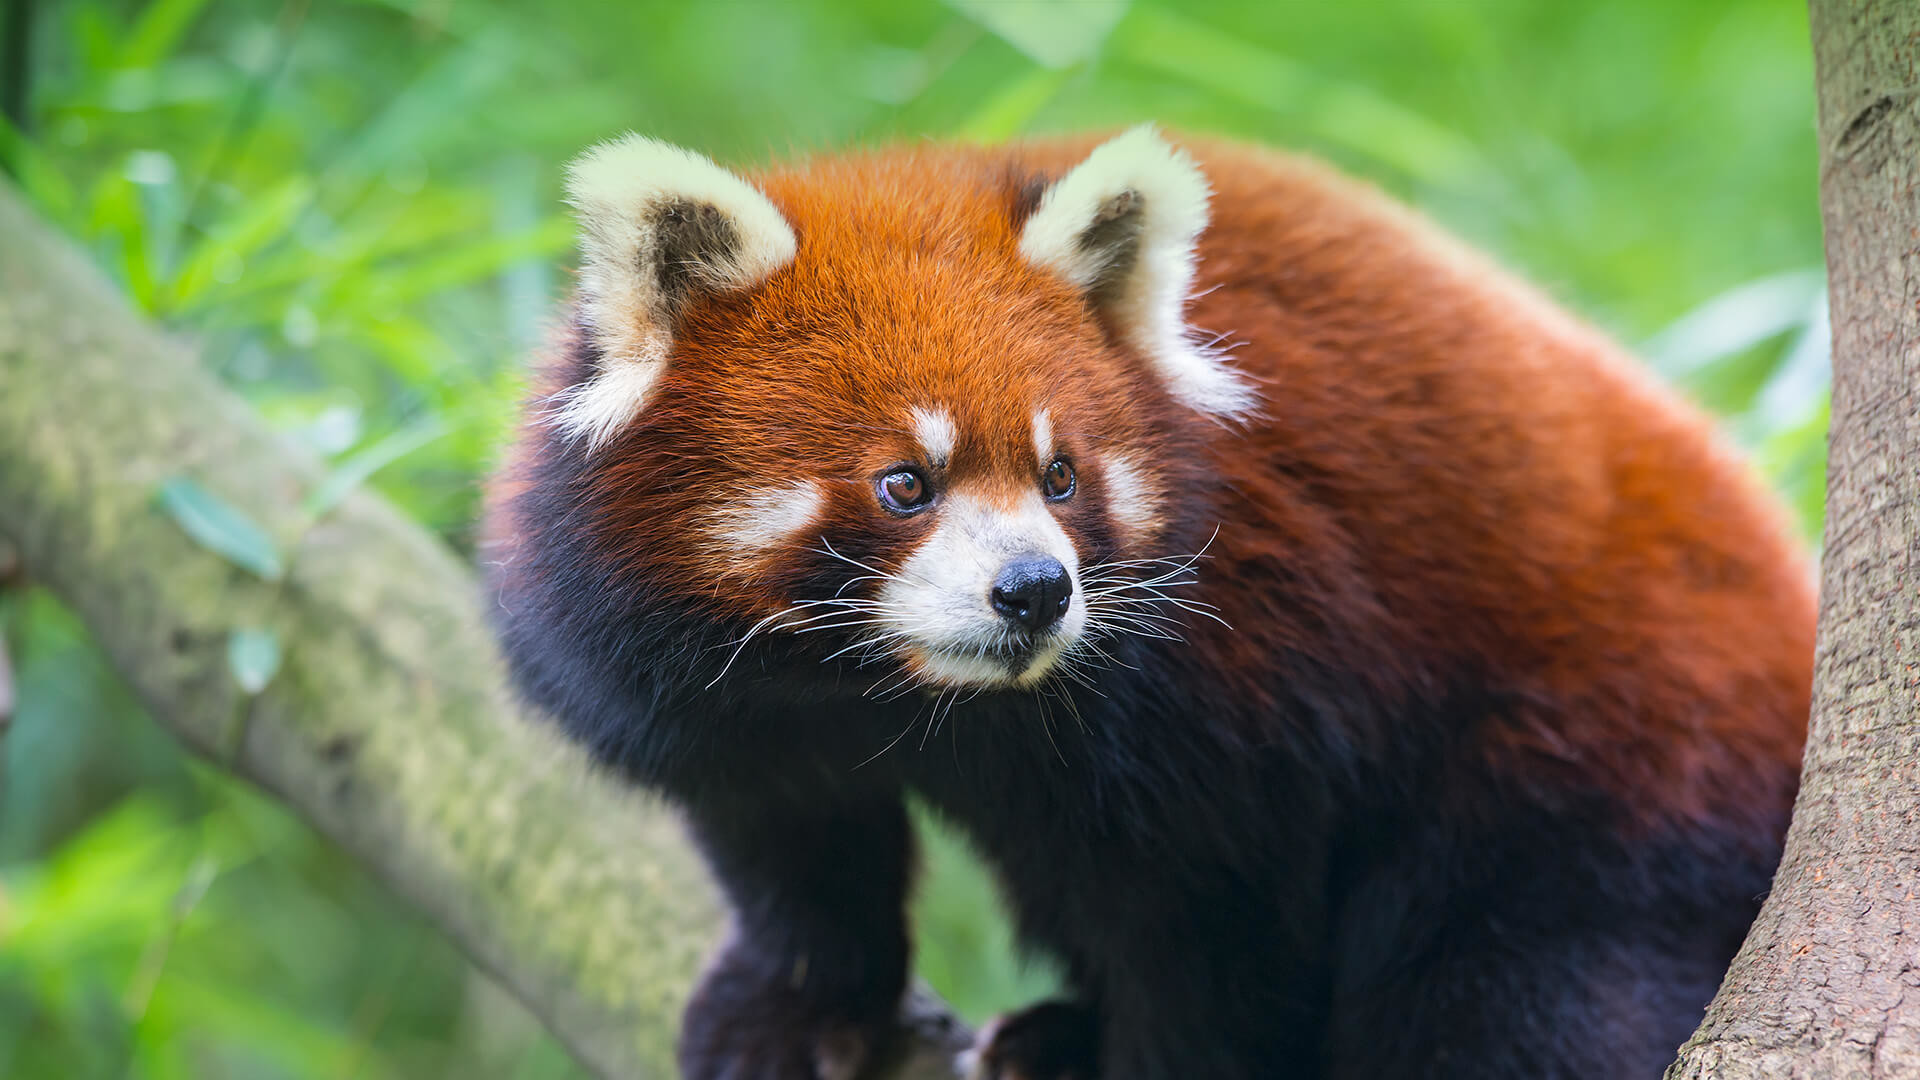 1920x1080 Where Do Red Pandas Live? And Other Red Panda Facts | Stories | WWF ...